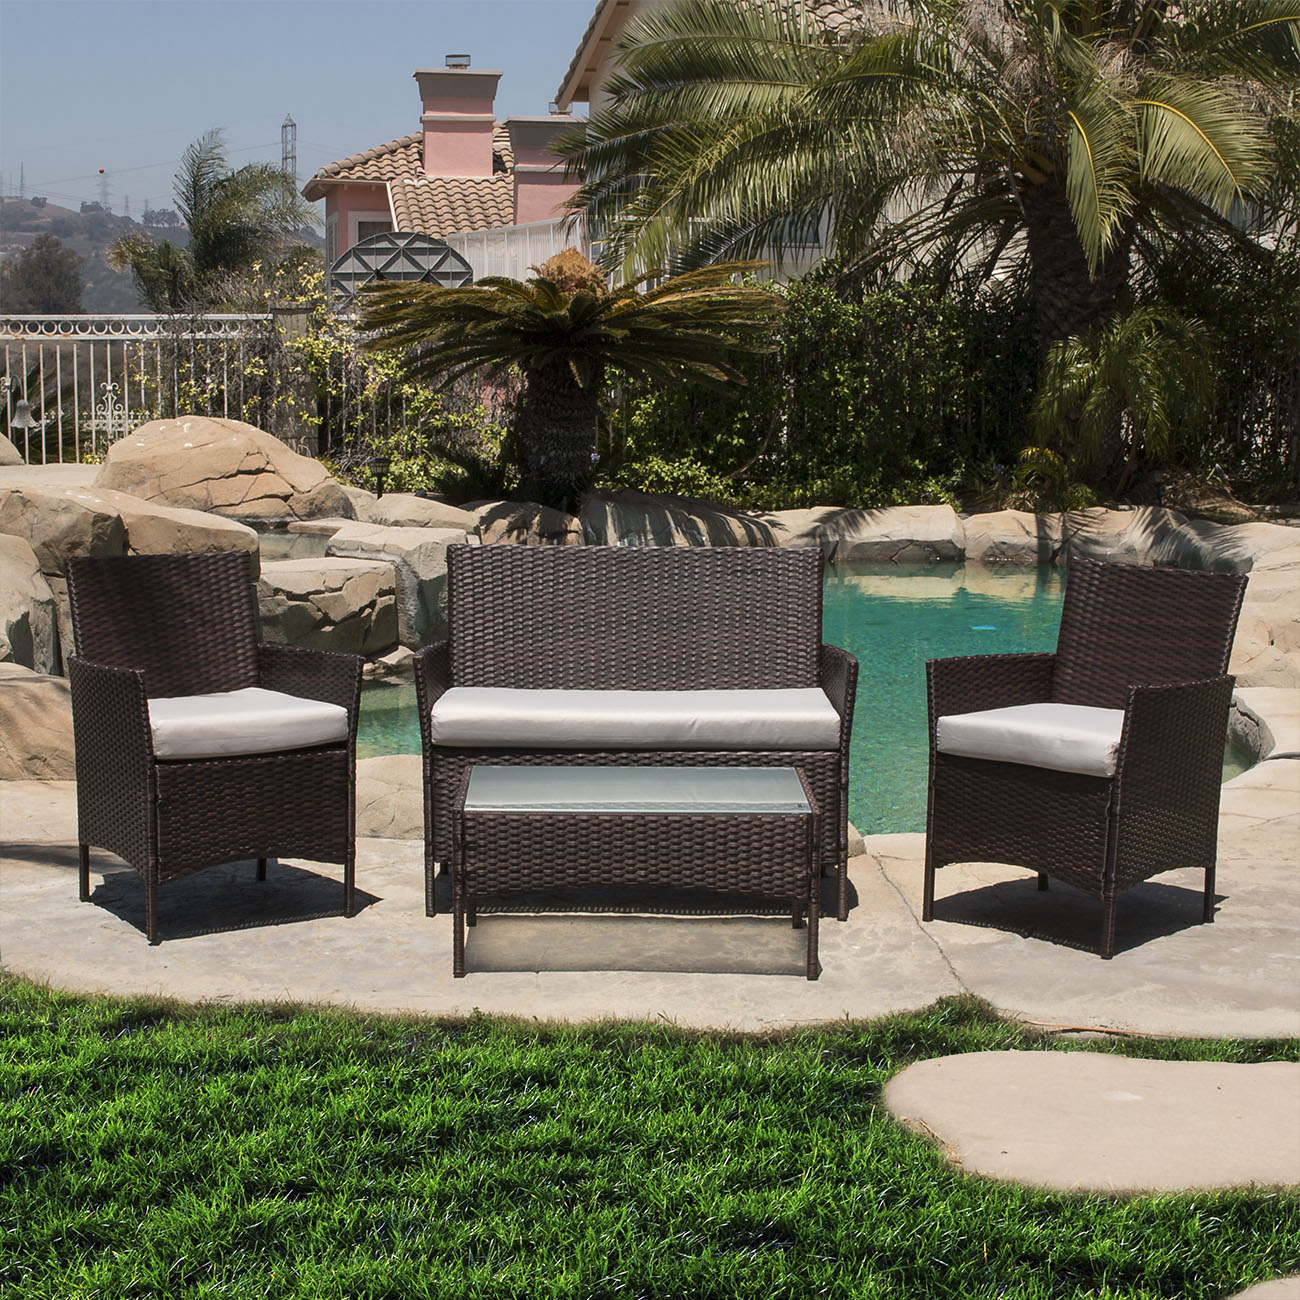 Belleze 4 PCS Cushioned Outdoor Wicker Patio Set Garden Lawn Rattan Sofa Furniture, Brown by Belleze